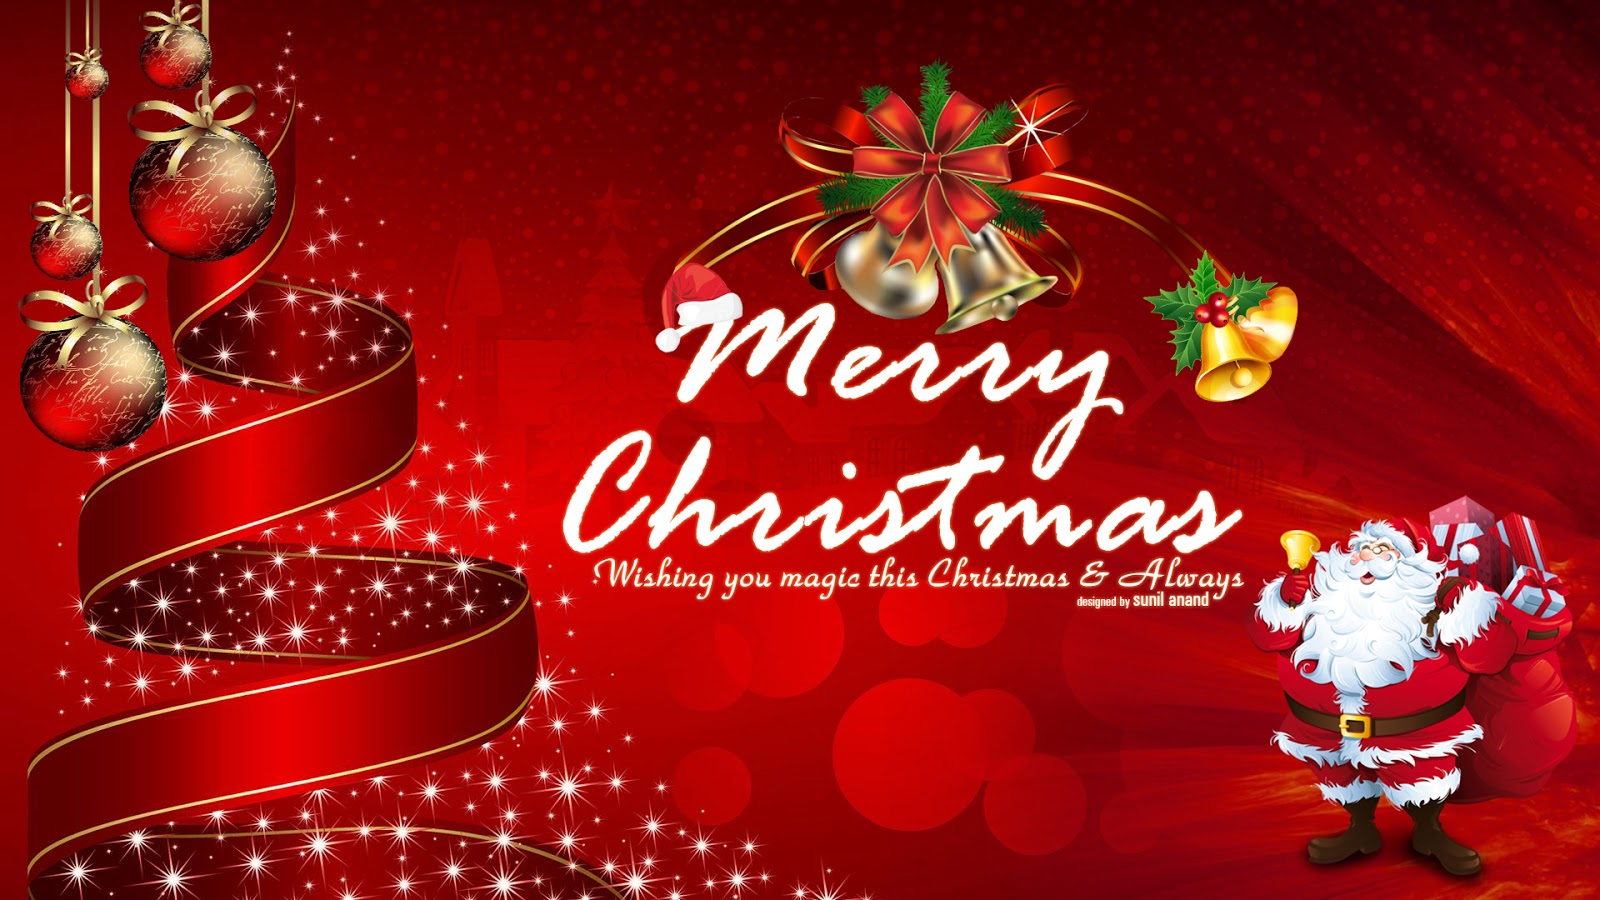 ek diwane ki kahani: merry christmas wallpapersunil anand